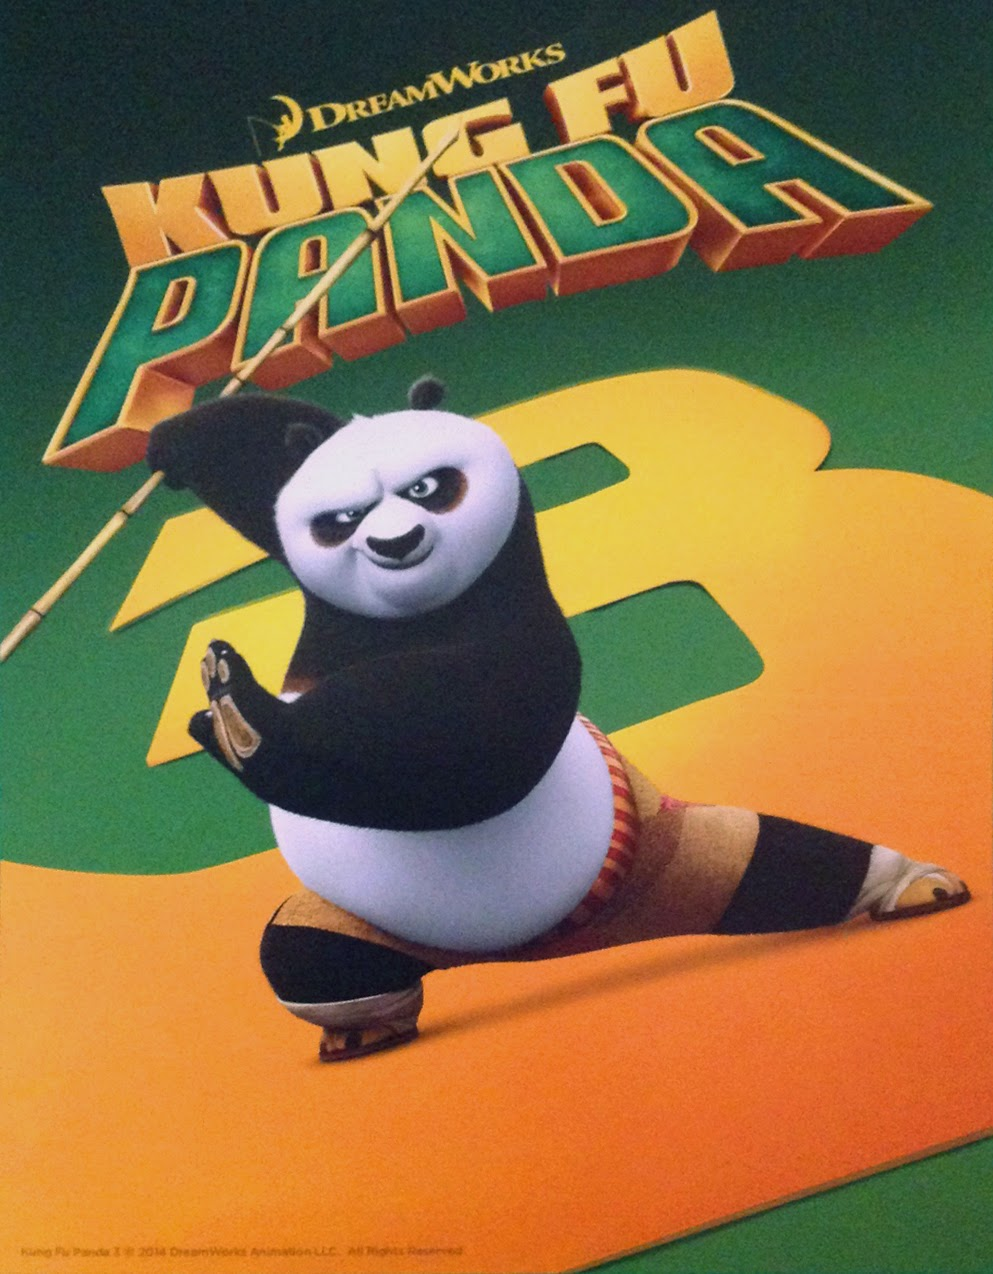 kung fu panda 3 movie plot and teaser posters teaser trailer